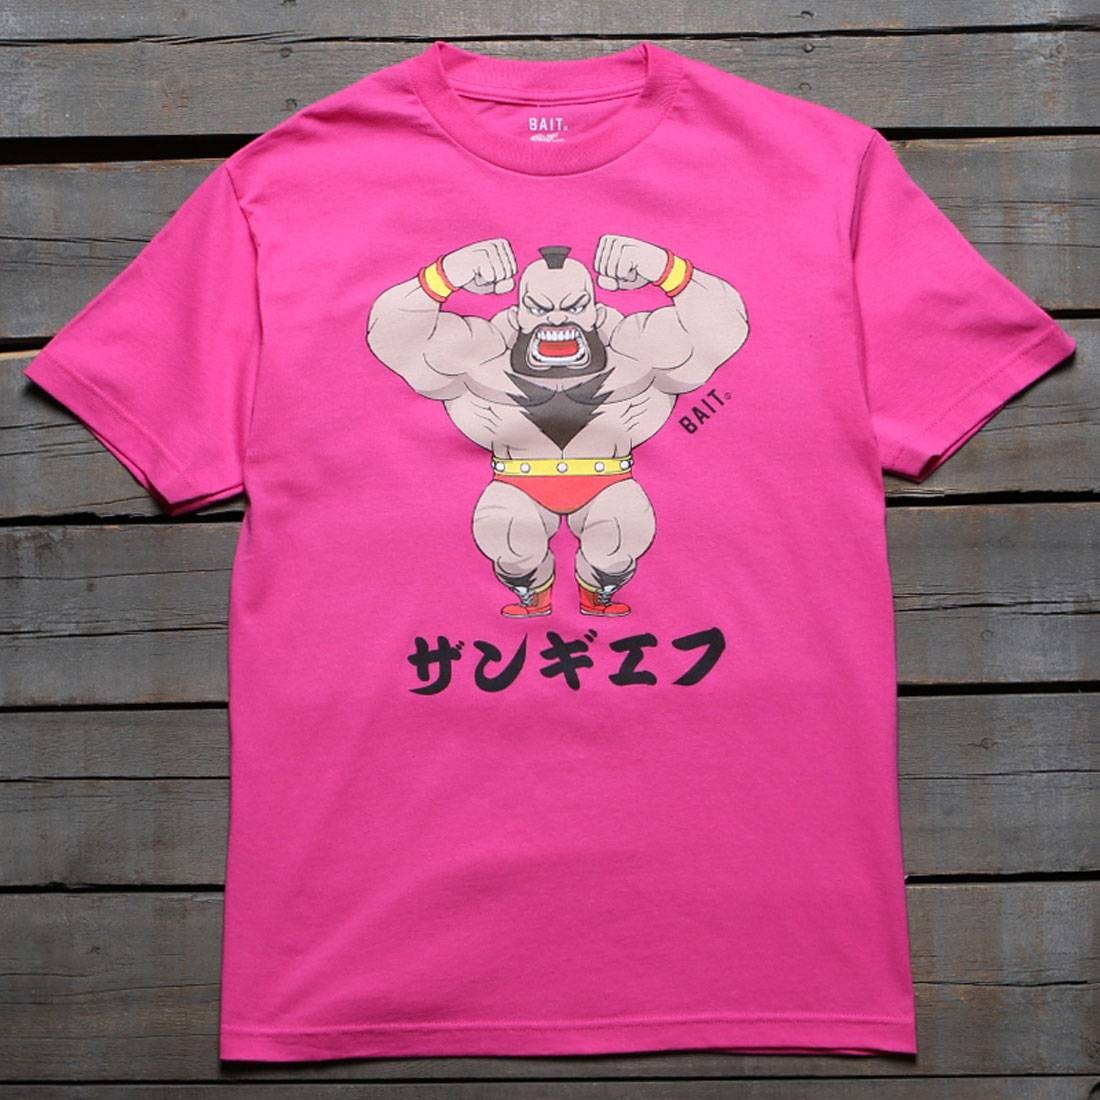 BAIT x Street Fighter Men Chibi Zangief Tee (pink / hot pink)